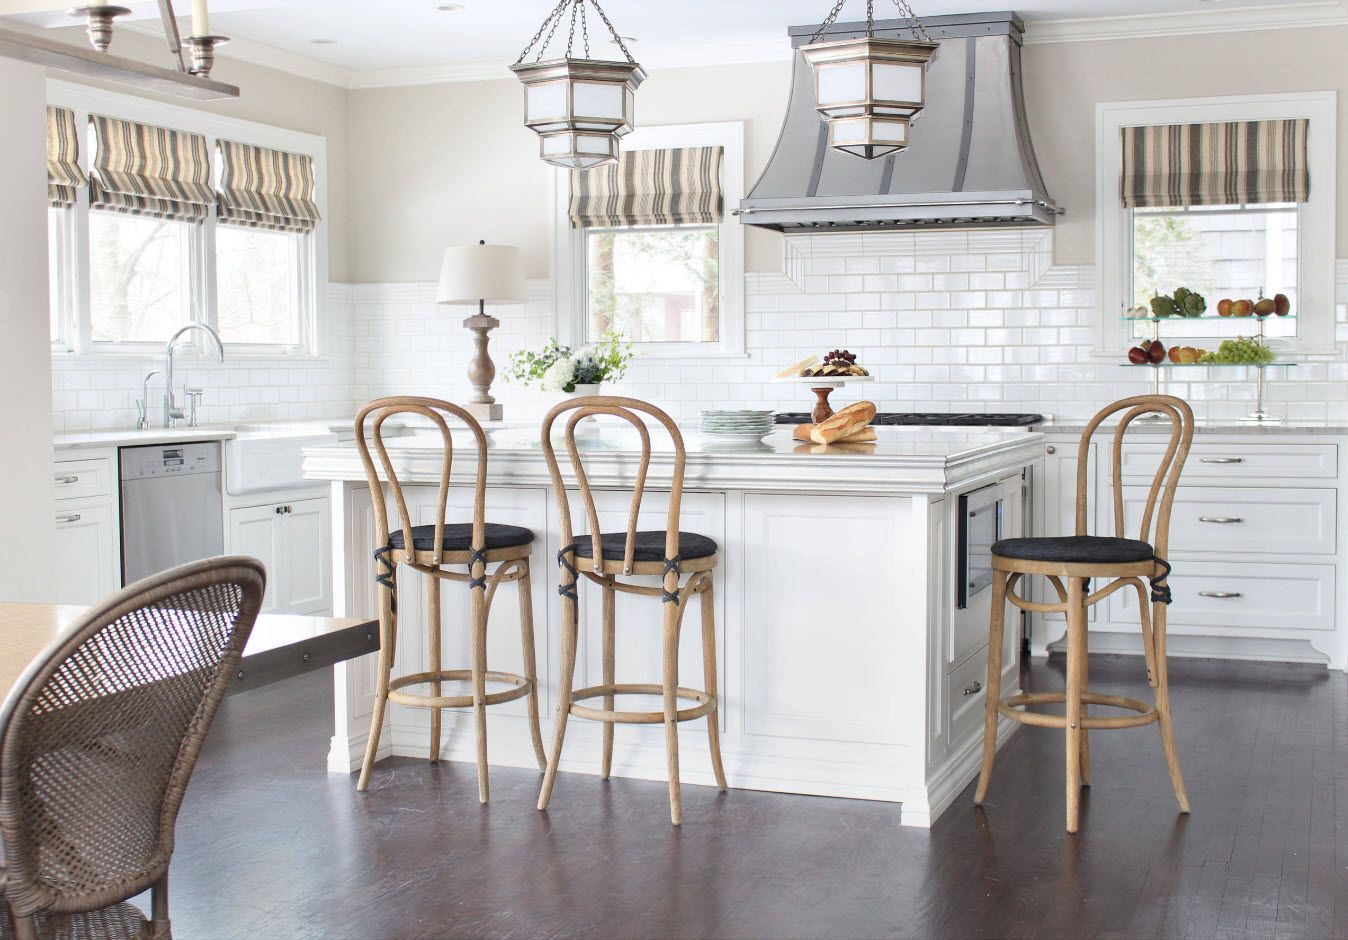 Provence chairs' design for the rustic kitchen 2017